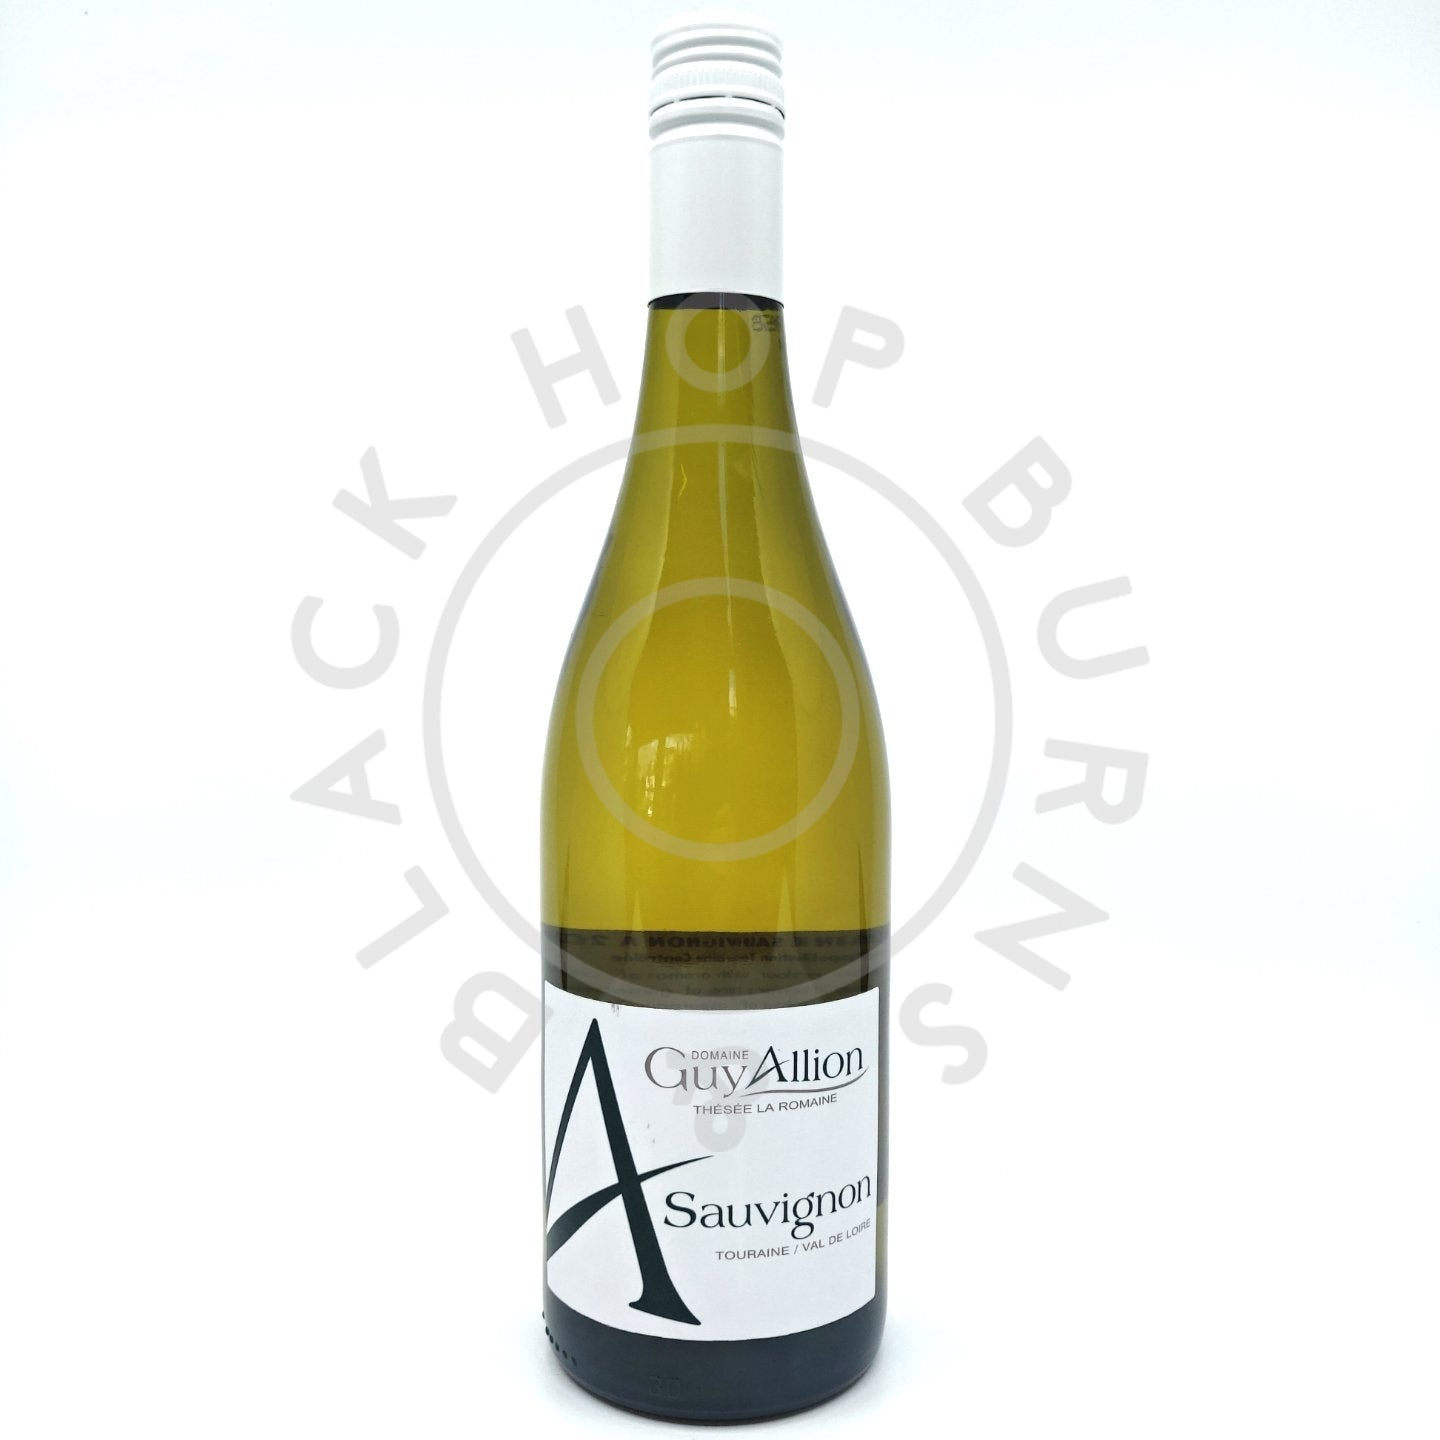 Guy Allion Sauvignon de Touraine 2019 12.5% (750ml)-Hop Burns & Black